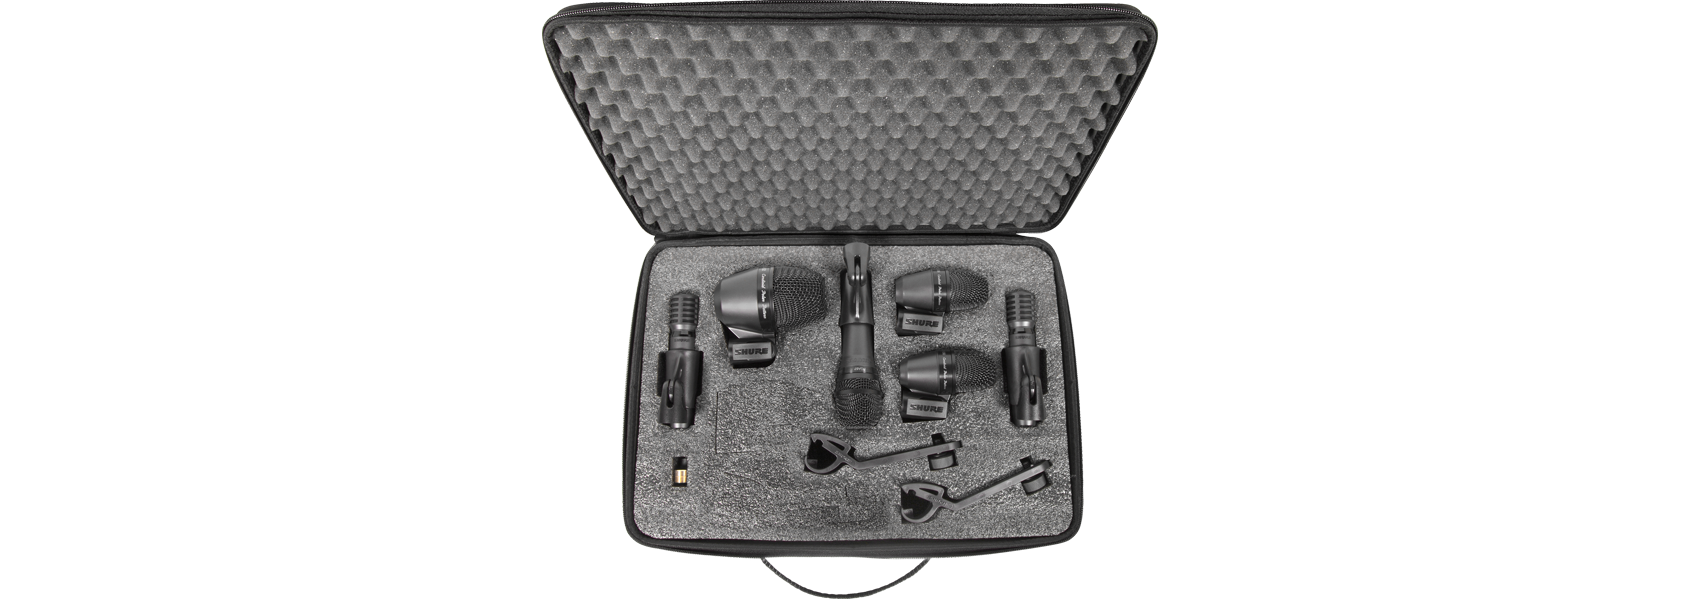 Illustration Shure PG Alta Drum Microphone Kit 6 – The extended package